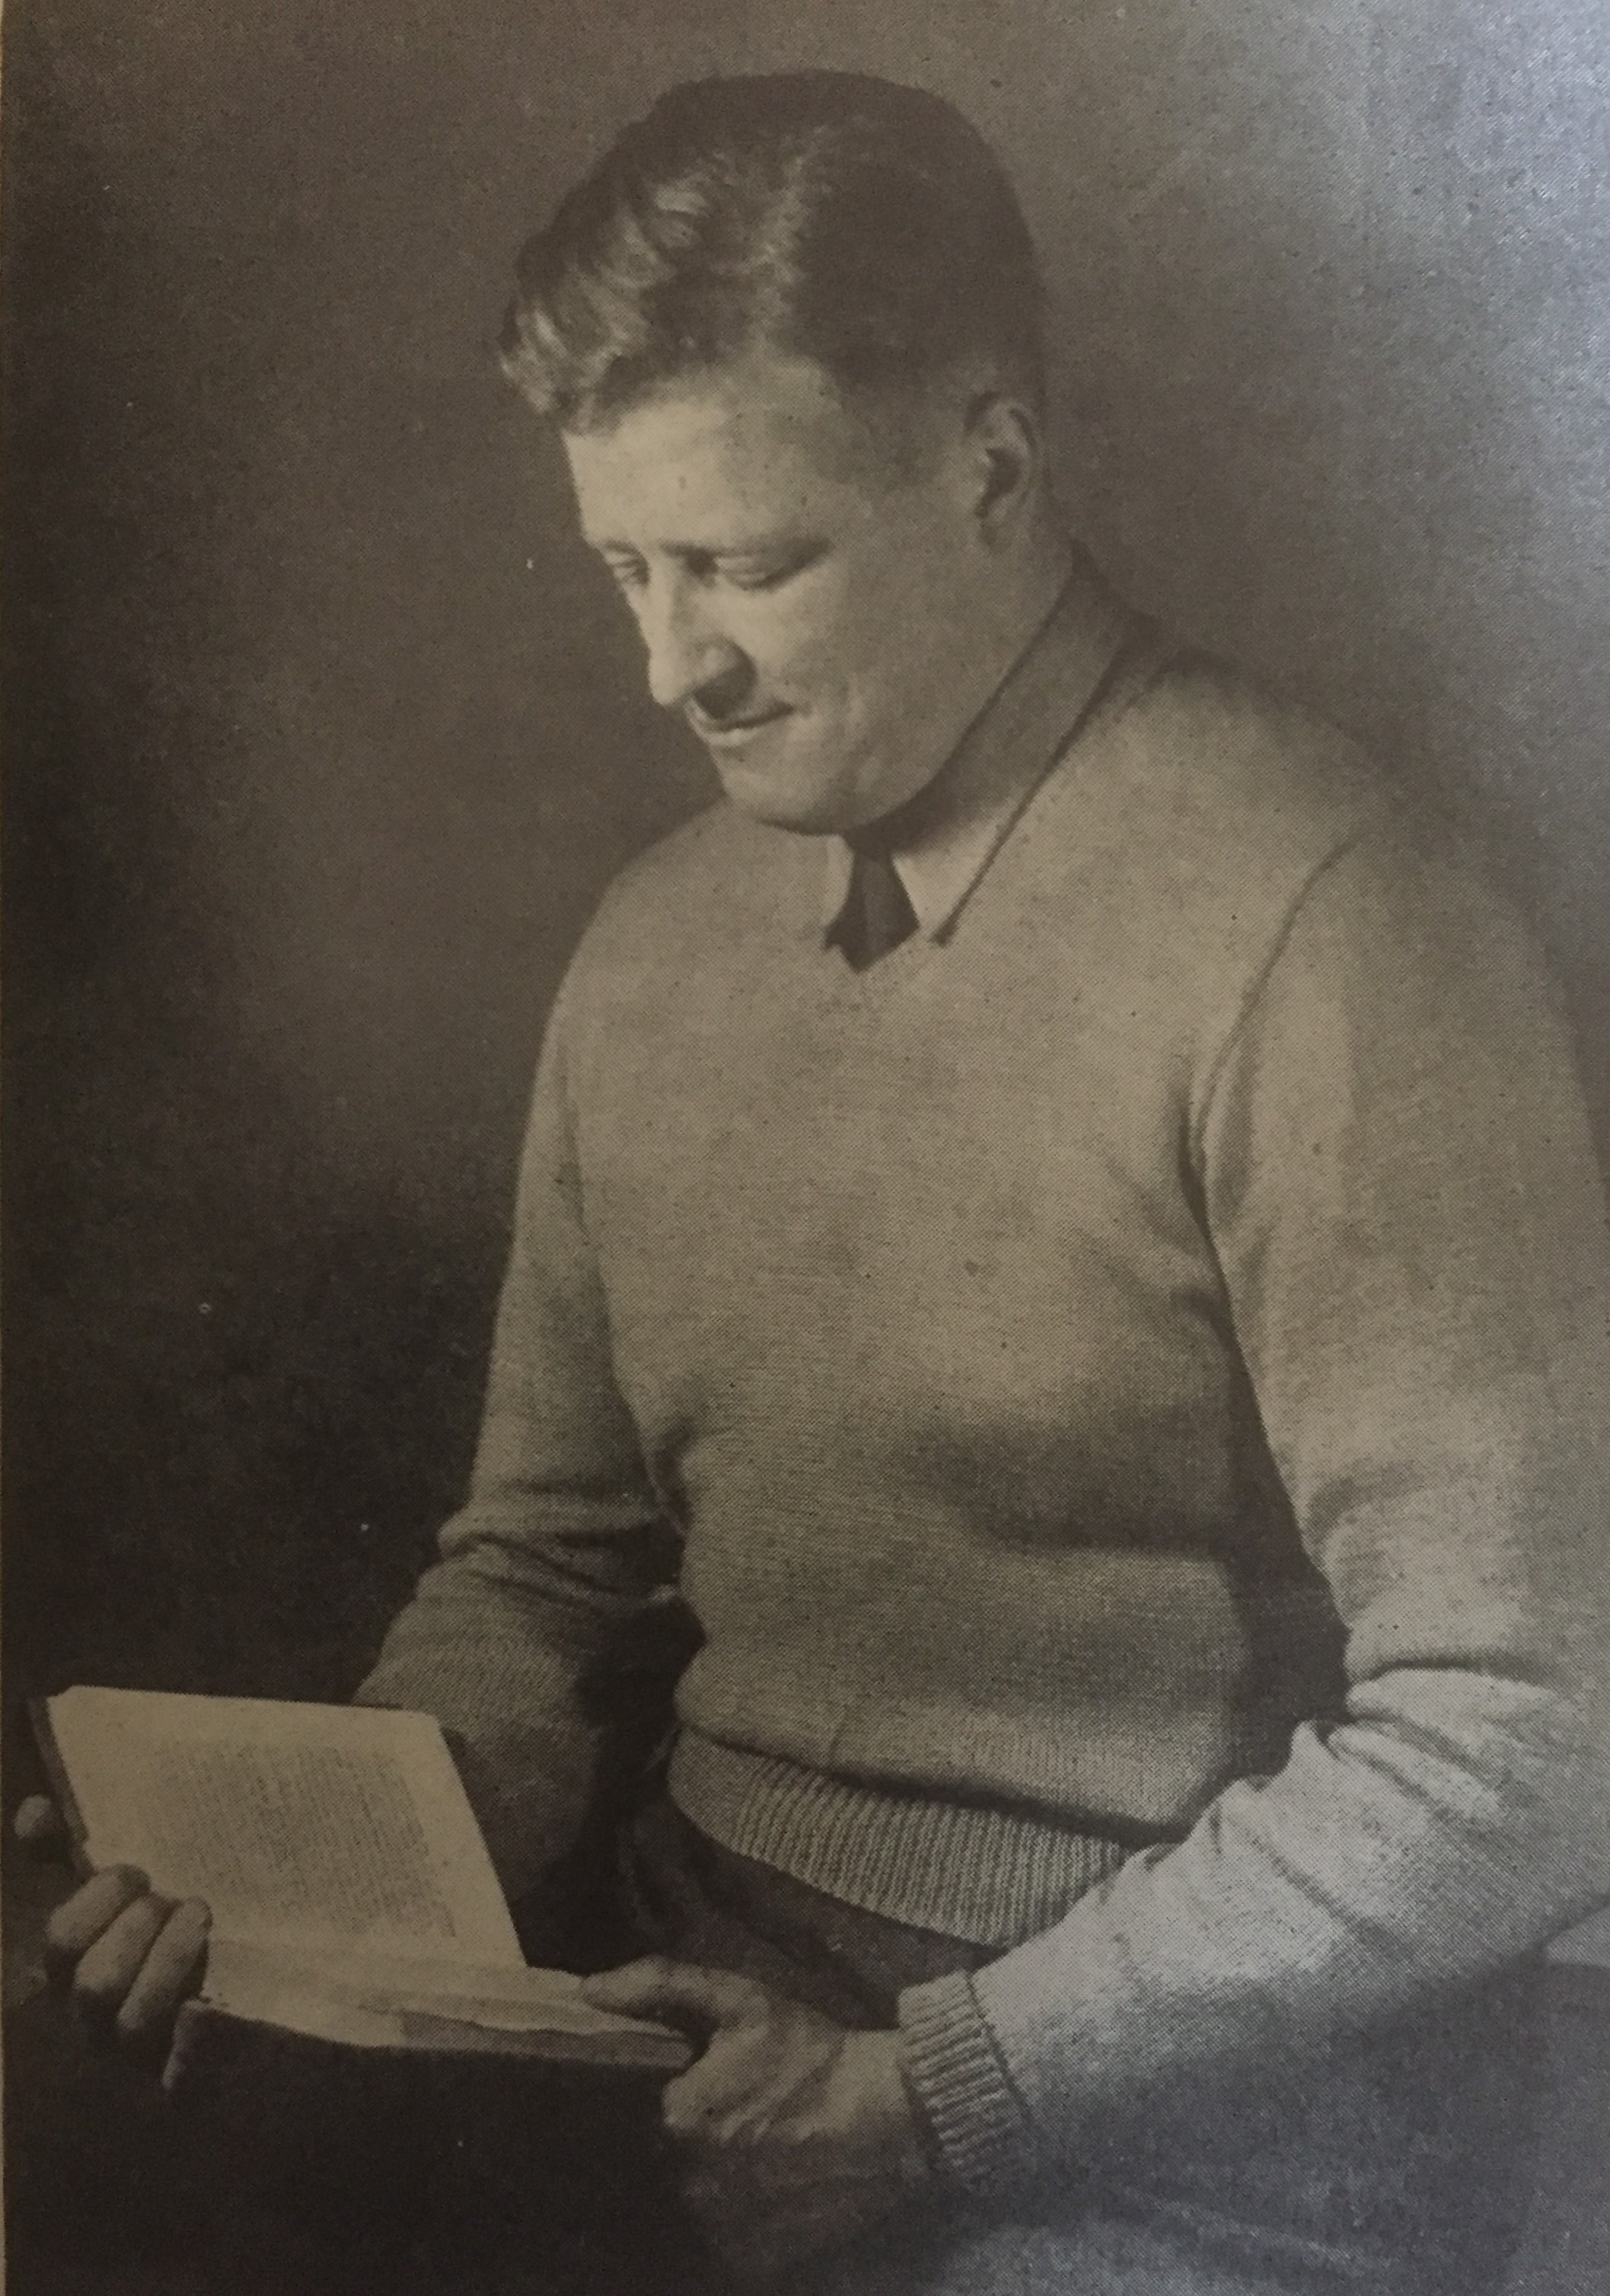 Vintage photo of man in v neck jumper reading a book